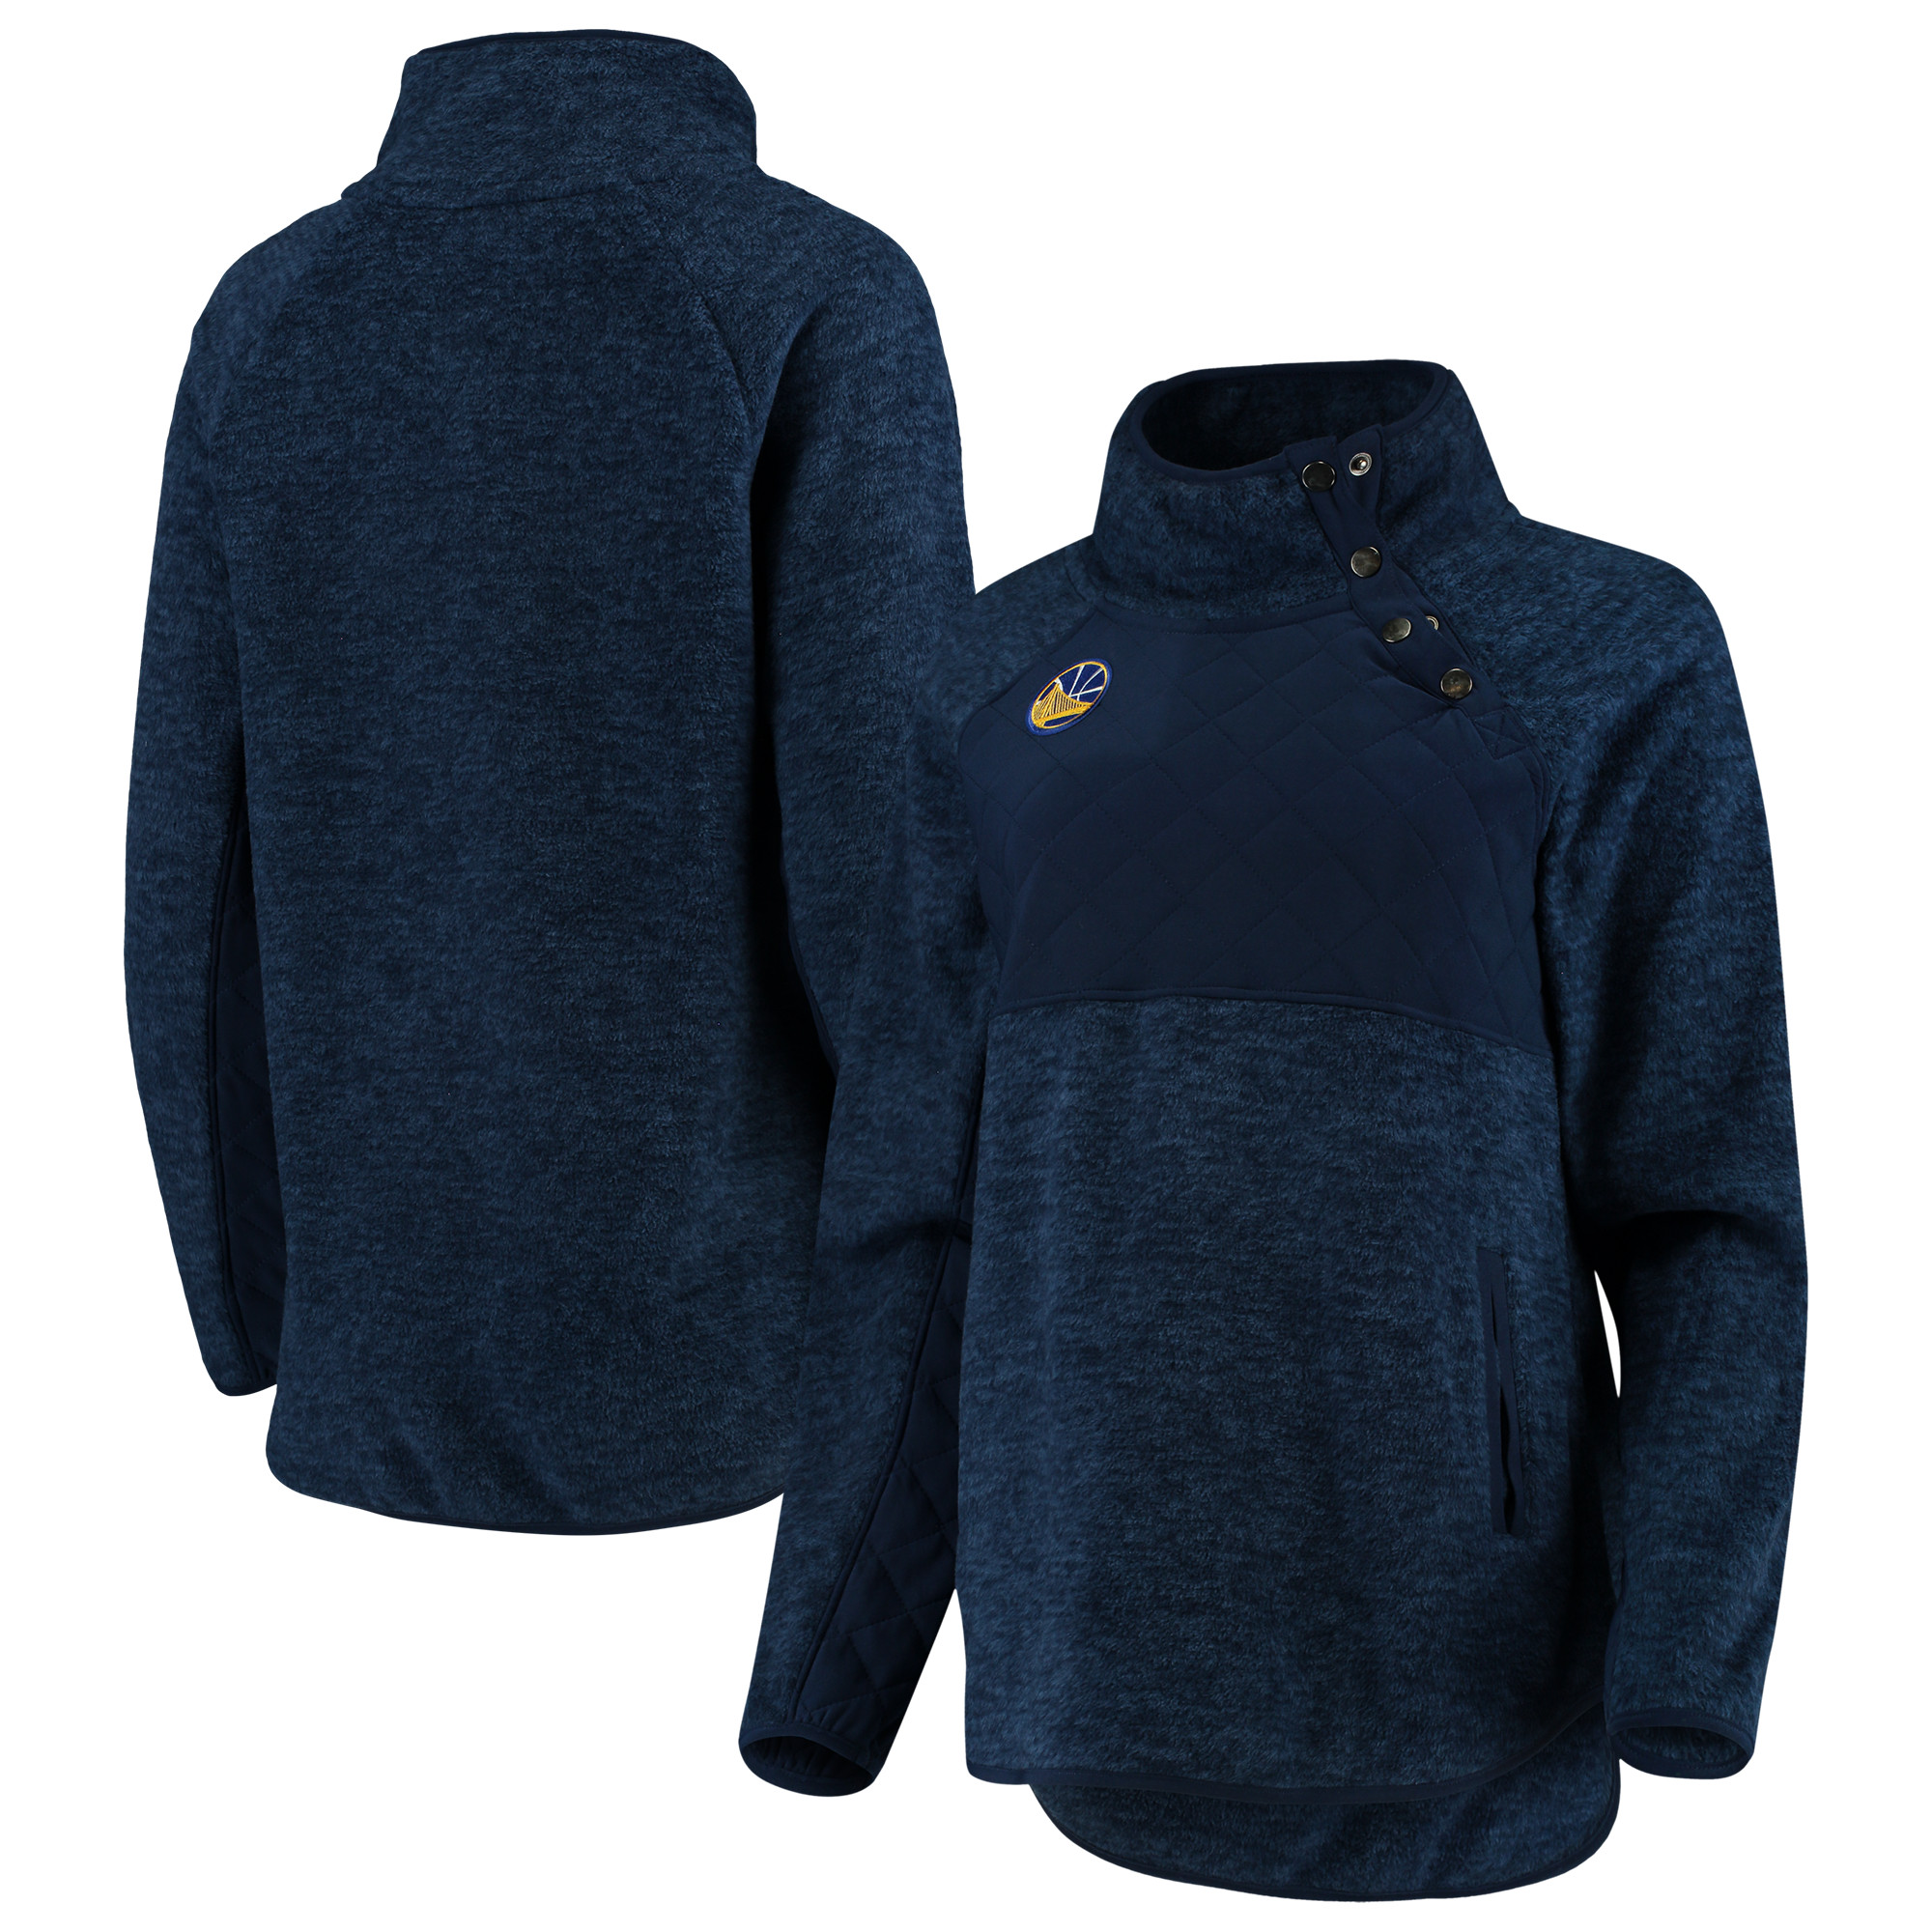 Golden State Warriors Women's Sidenote Quilted Snap-Up Pullover Jacket - Navy